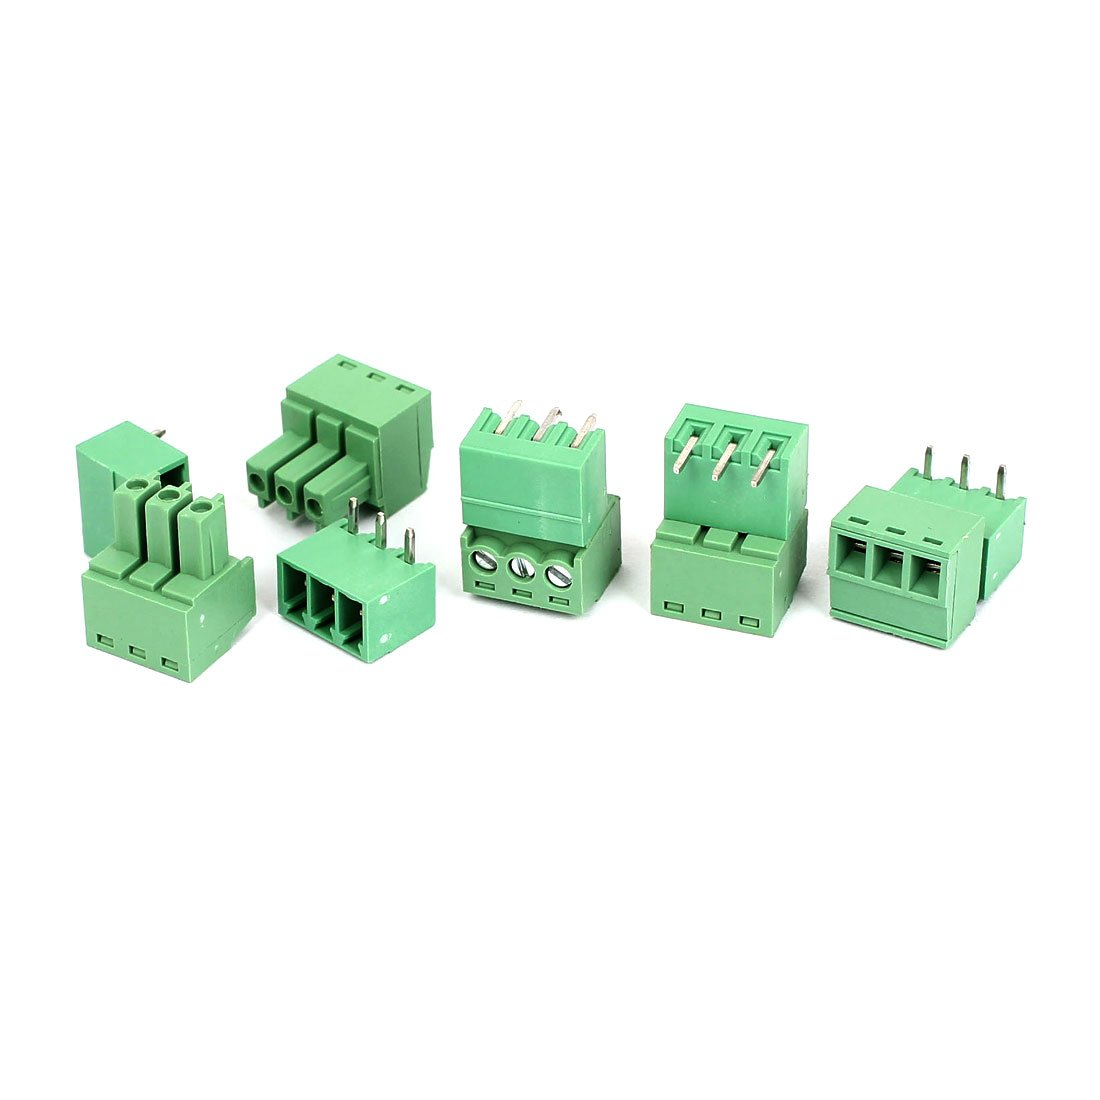 uxcell AC 300V 8A 3P 3.8mm Pitch PCB Screw Terminal Block Connector 5 Set